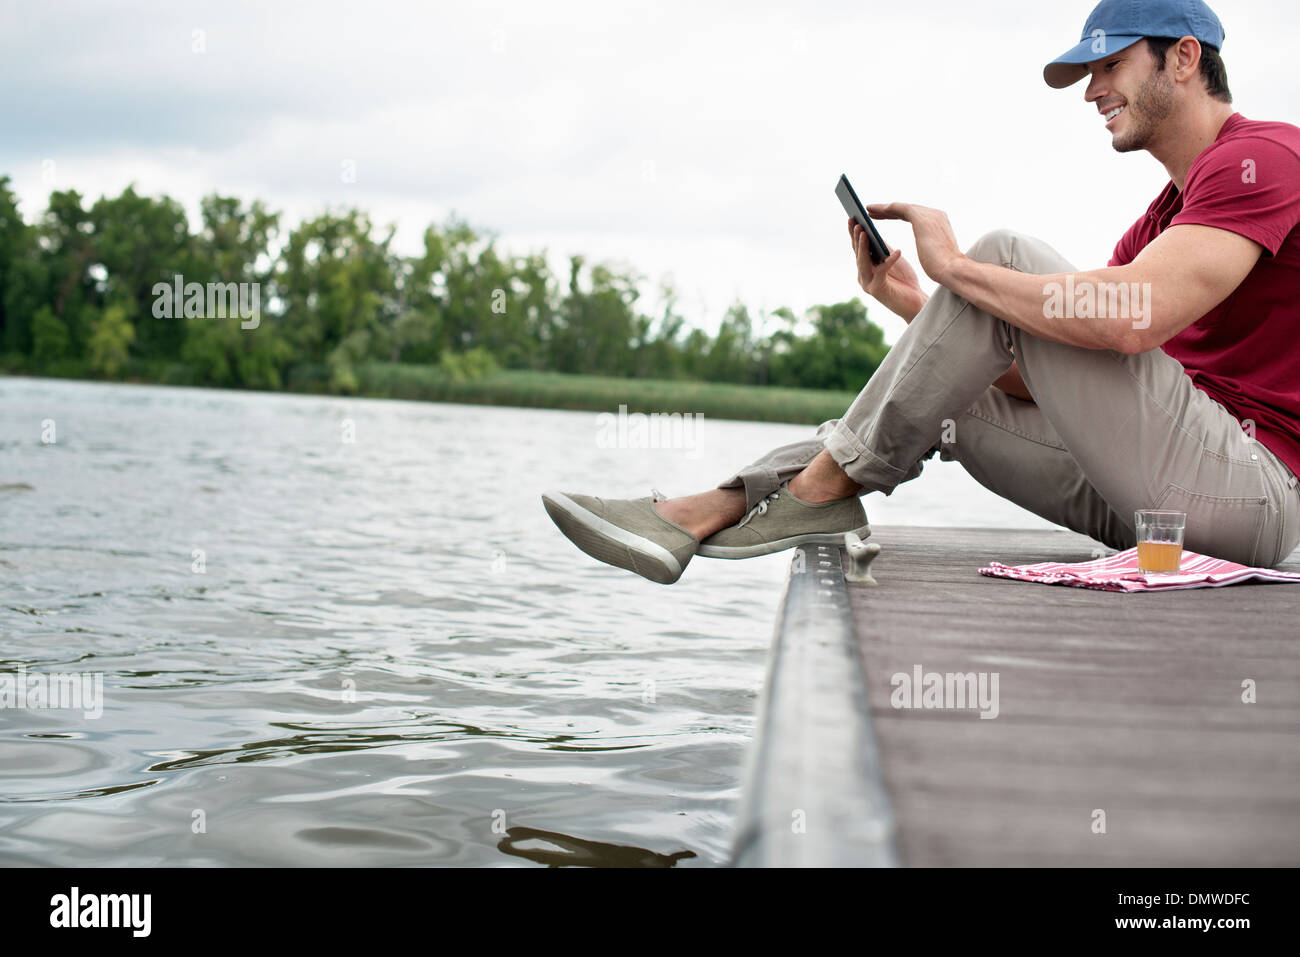 A man seated on a jetty by a lake using a digital tablet. - Stock Image